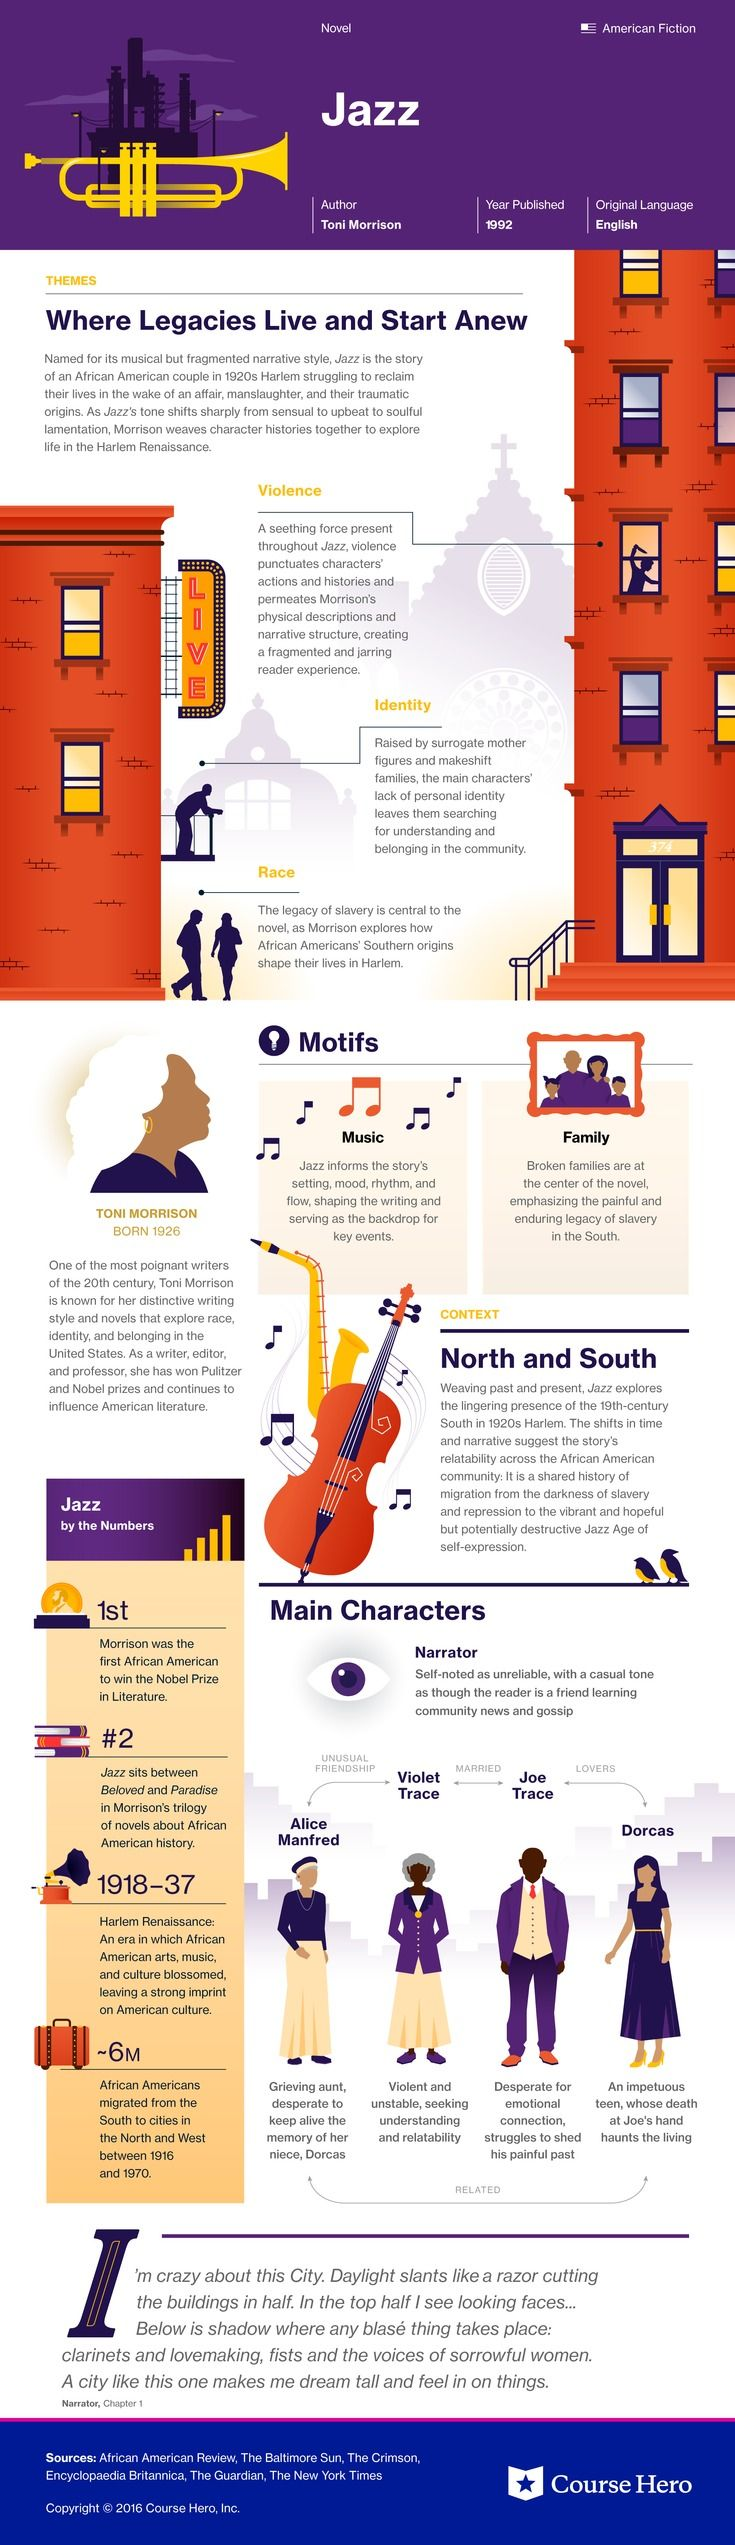 This @CourseHero infographic on Jazz is both visually stunning and informative!